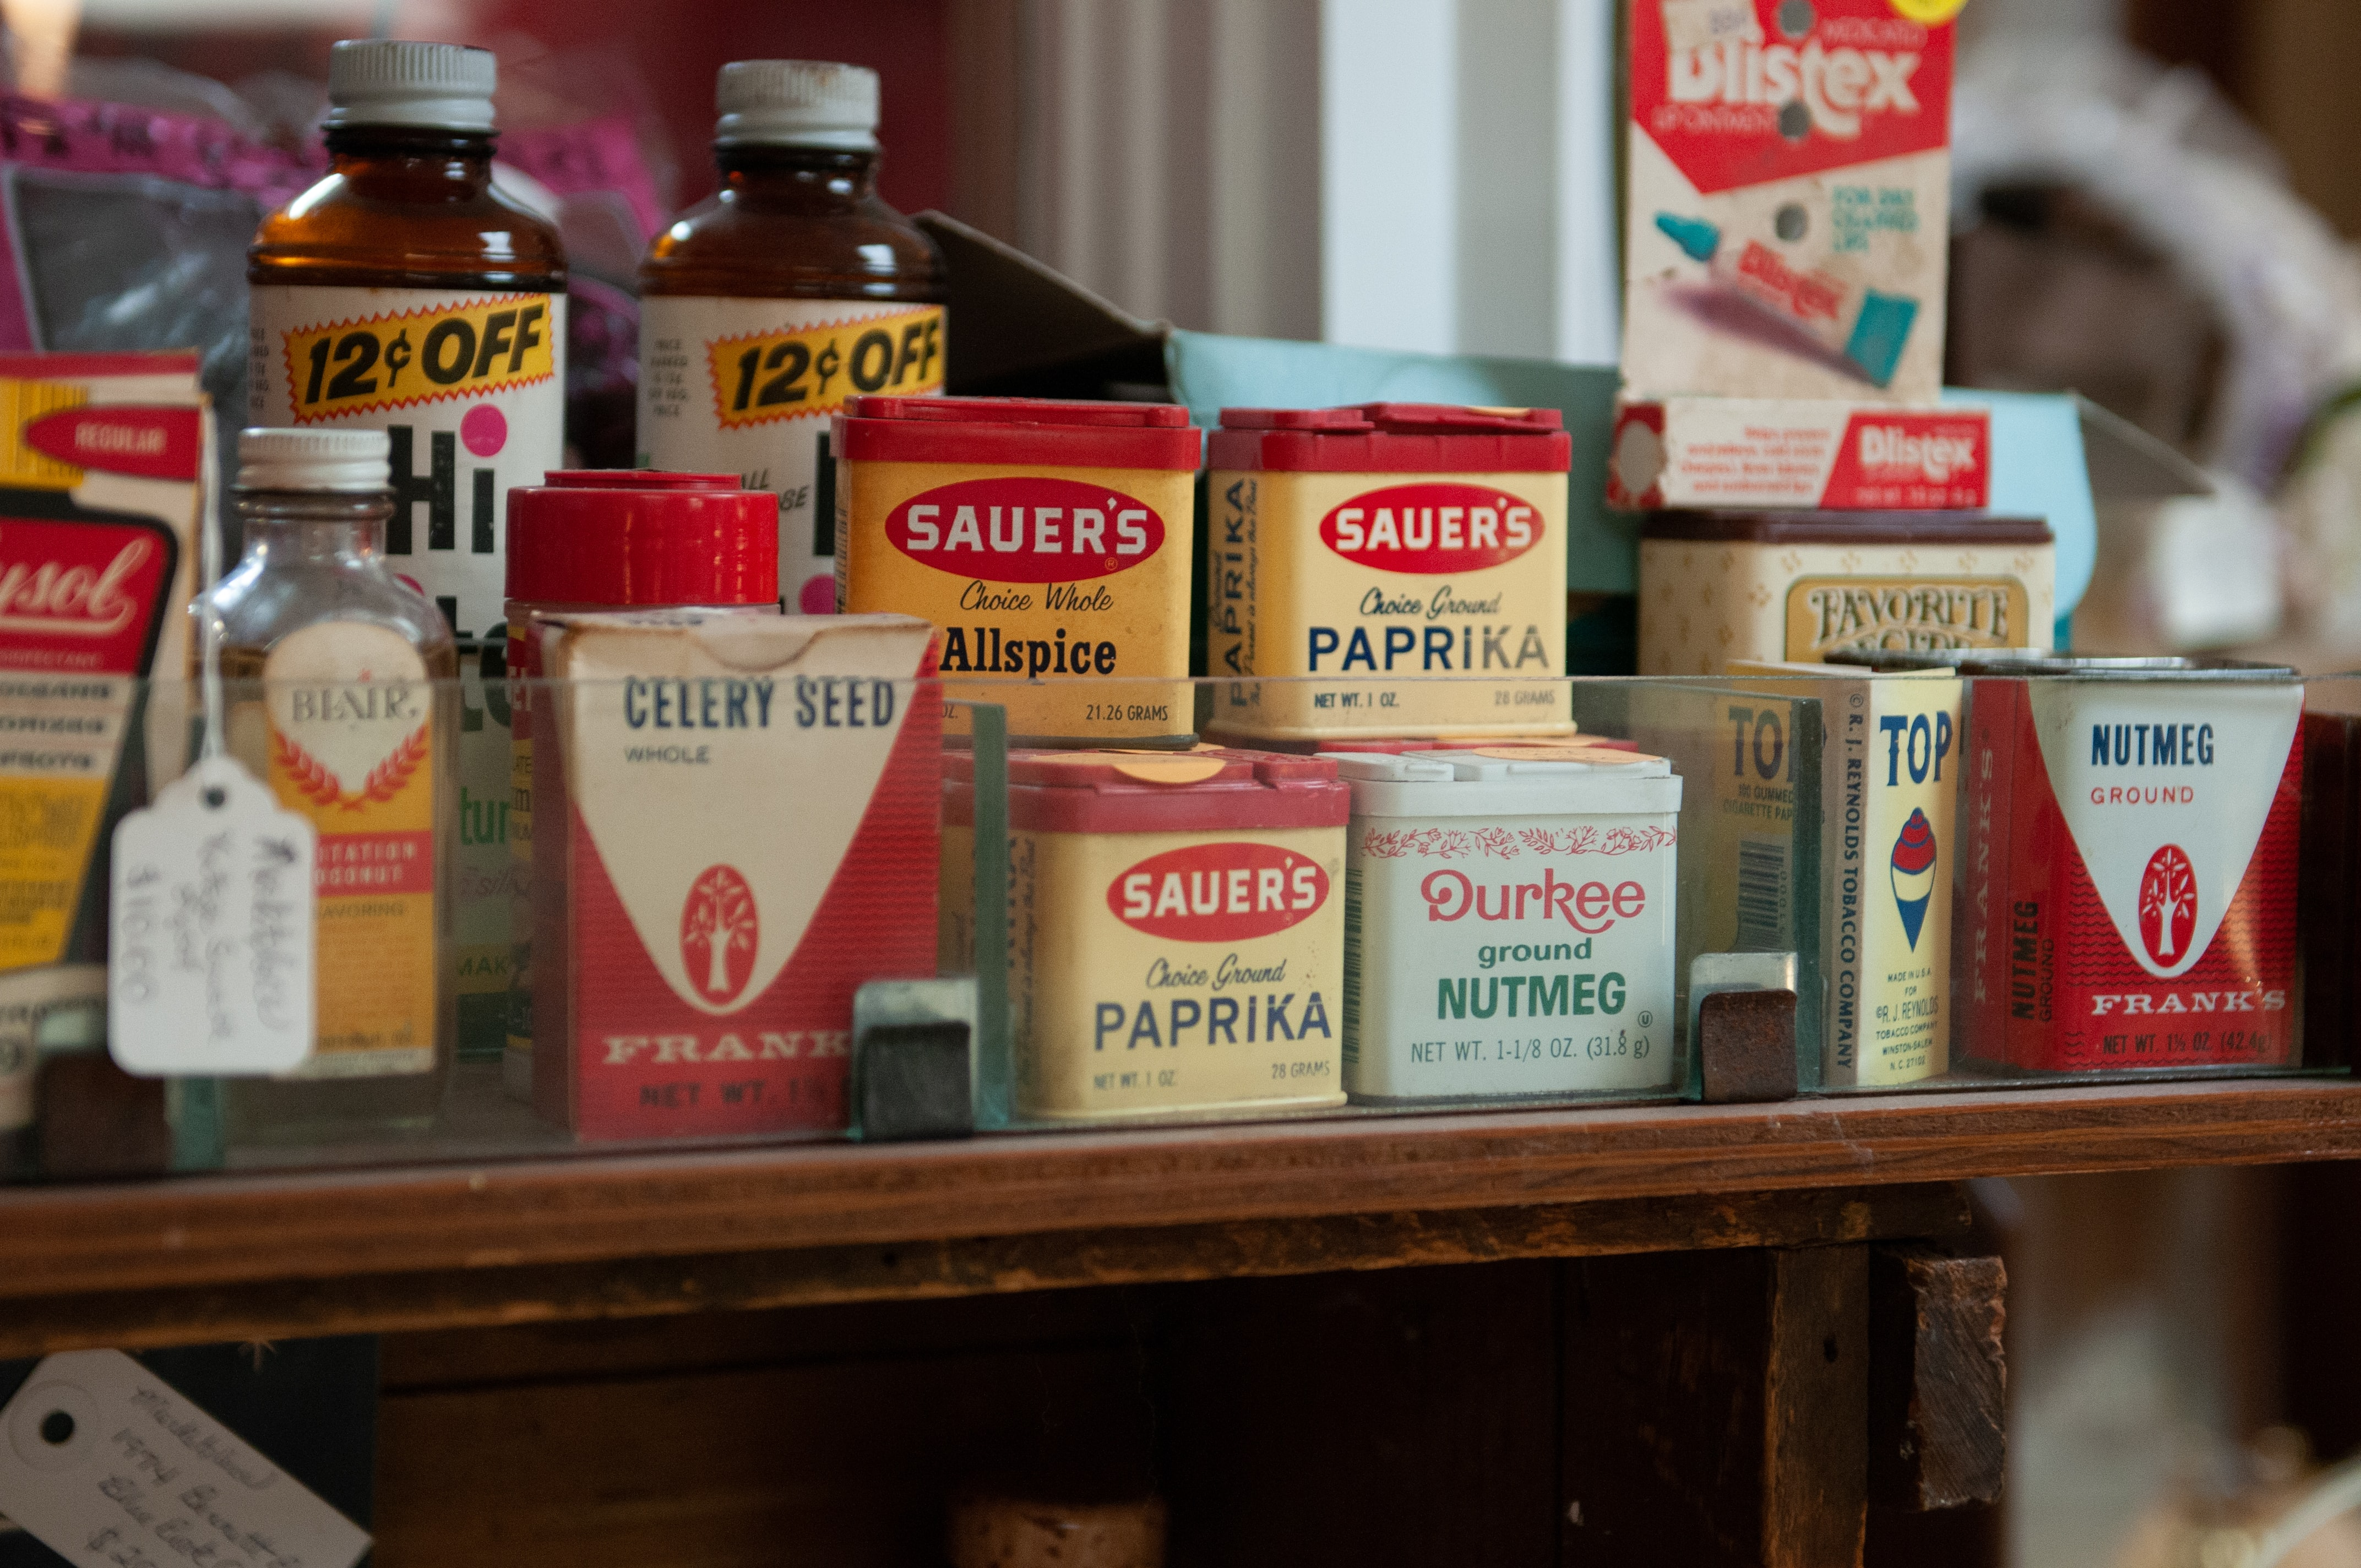 Sauer's products on table